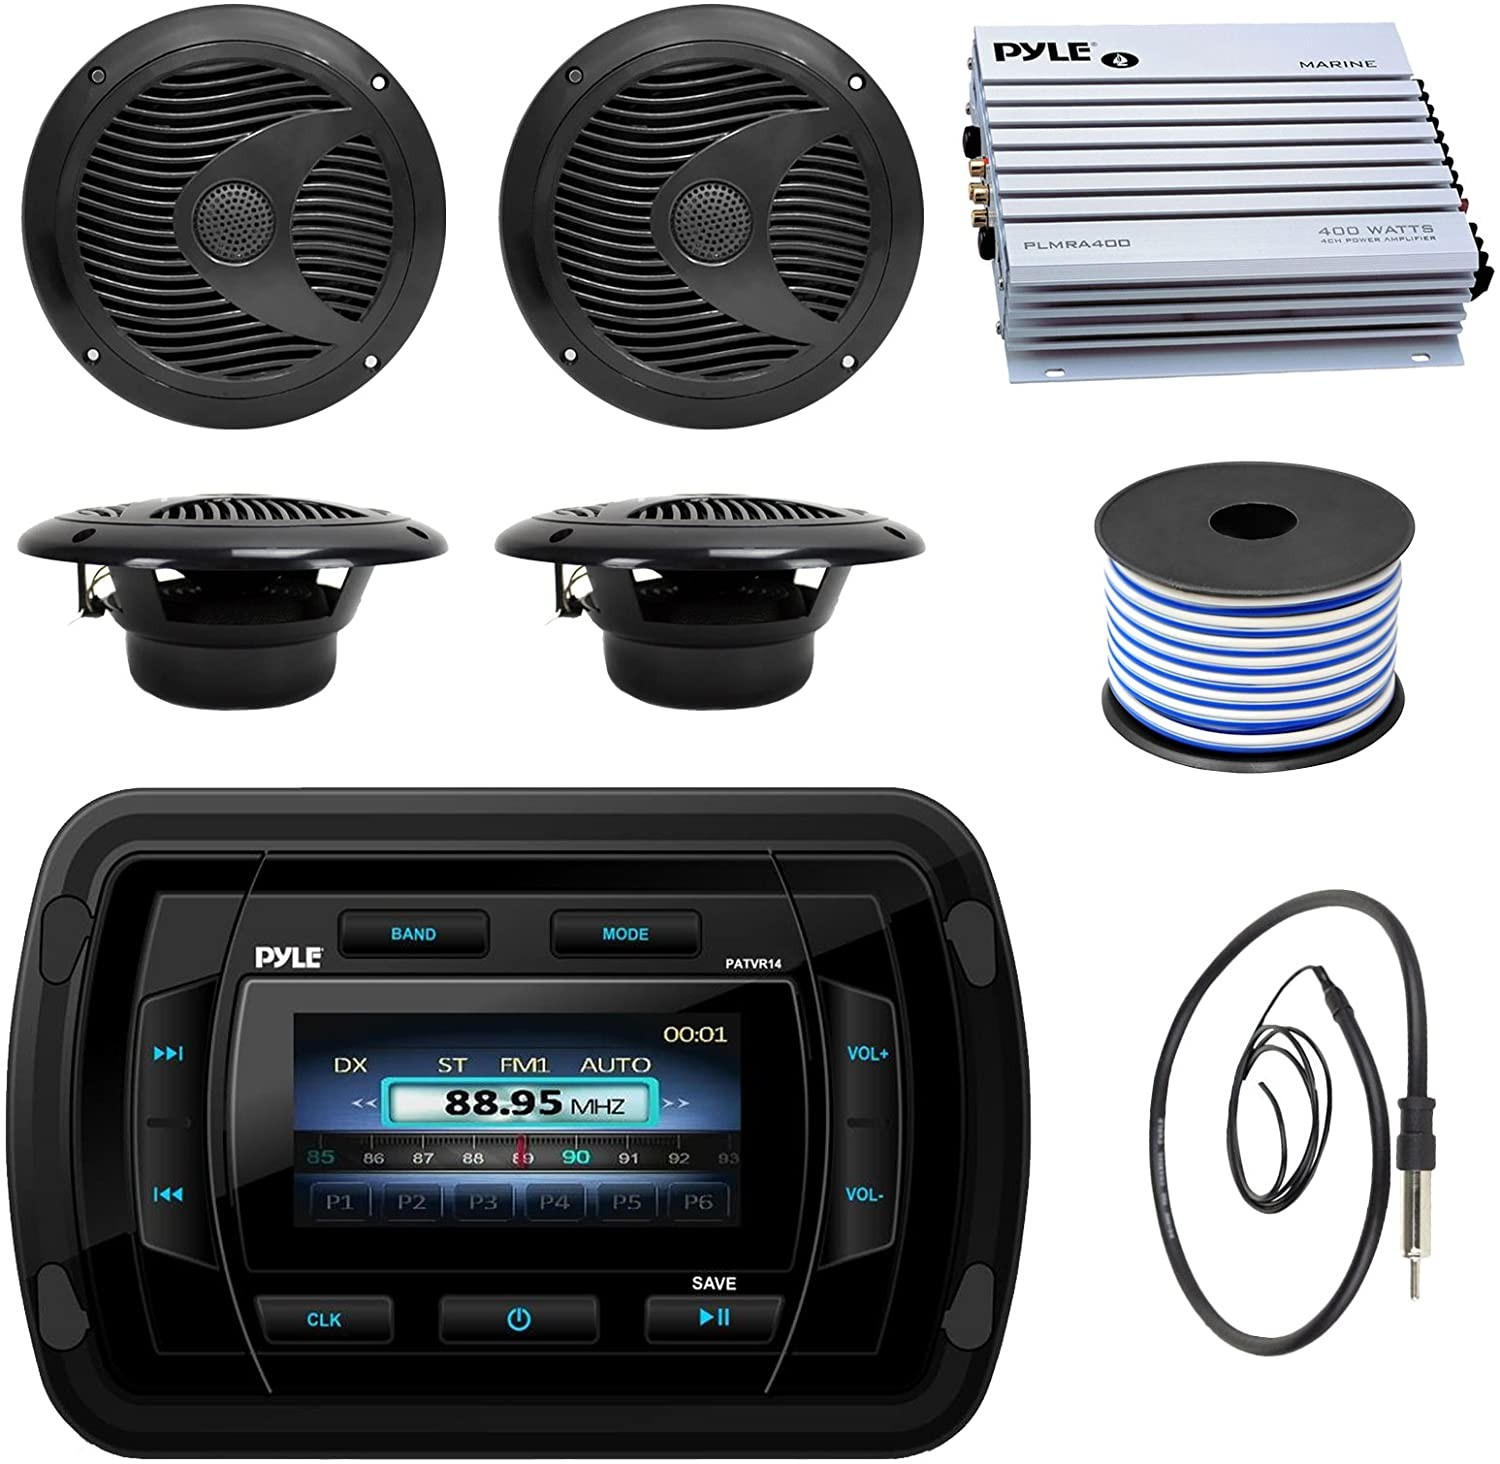 Pyle Hydra Amplifier Wiring Pyle Patvr14 Mp3 Mp5 Bluetooth Marine Boat Yacht Stereo Receiver Bundle Bo with 4x Black 6 1 2 Dual Cone Waterproof Stereo Speaker Enrock Radio Of Pyle Hydra Amplifier Wiring